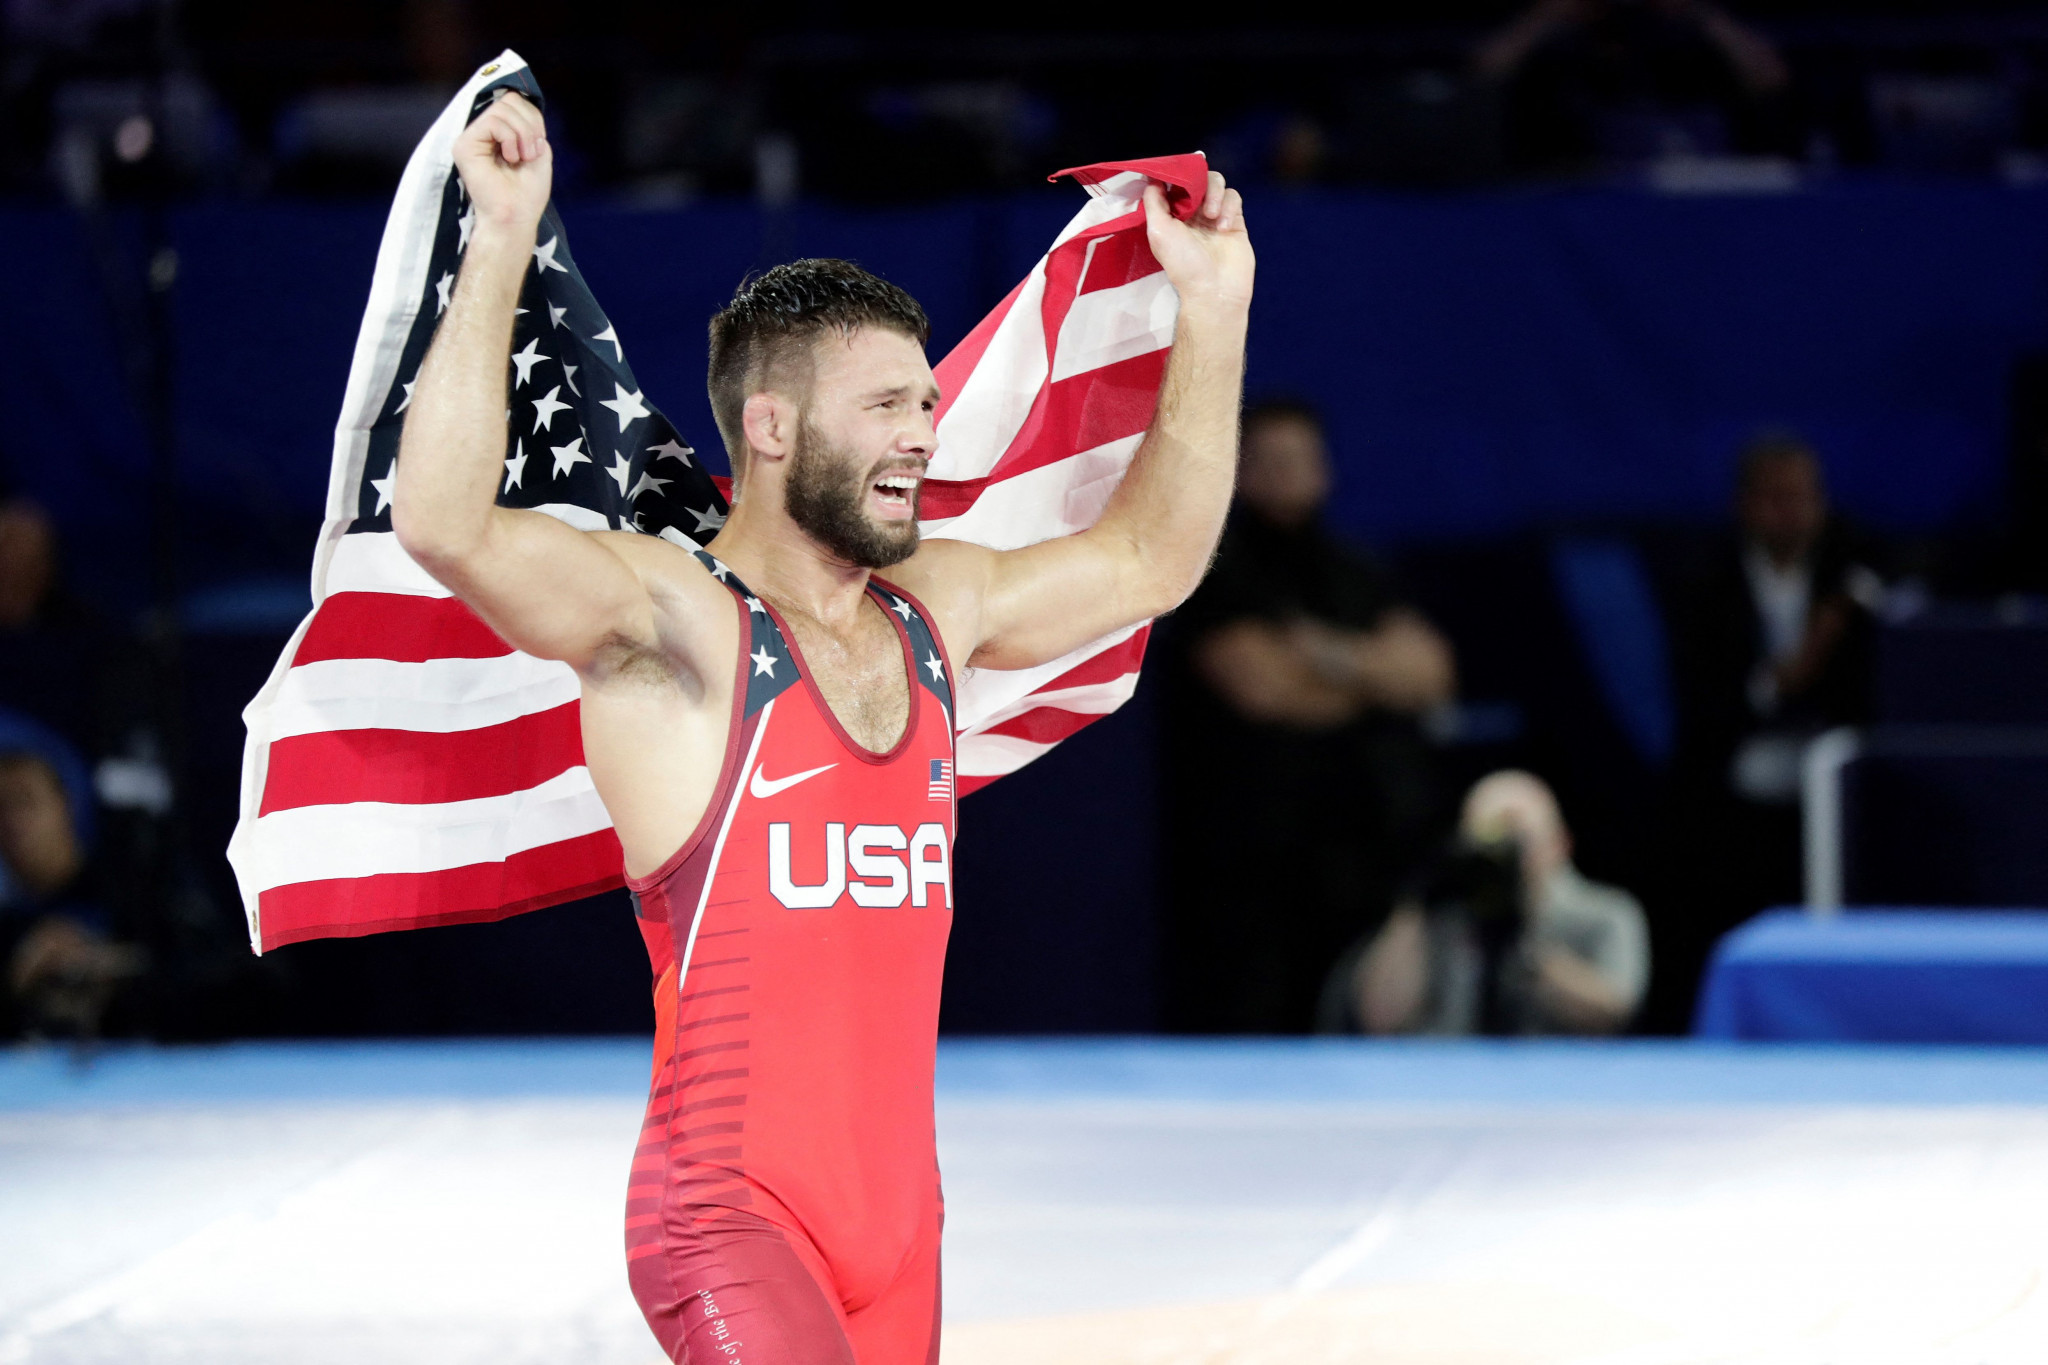 US claim two golds on third day of Wrestling World Championships